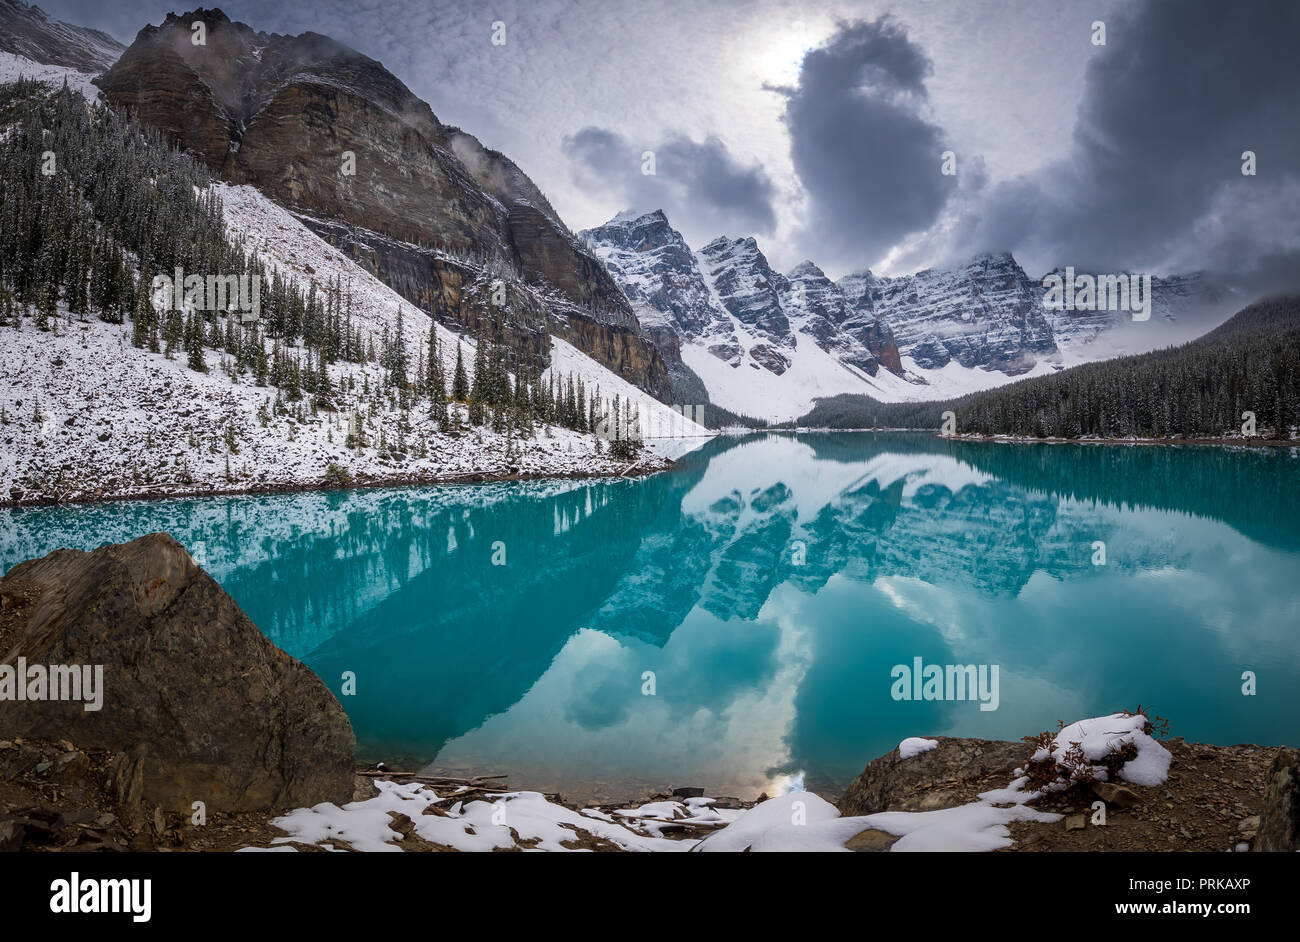 Moraine Lake is a glacially fed lake in Banff National Park, 14 kilometres (8.7 mi) outside the Village of Lake Louise, Alberta, Canada. - Stock Image